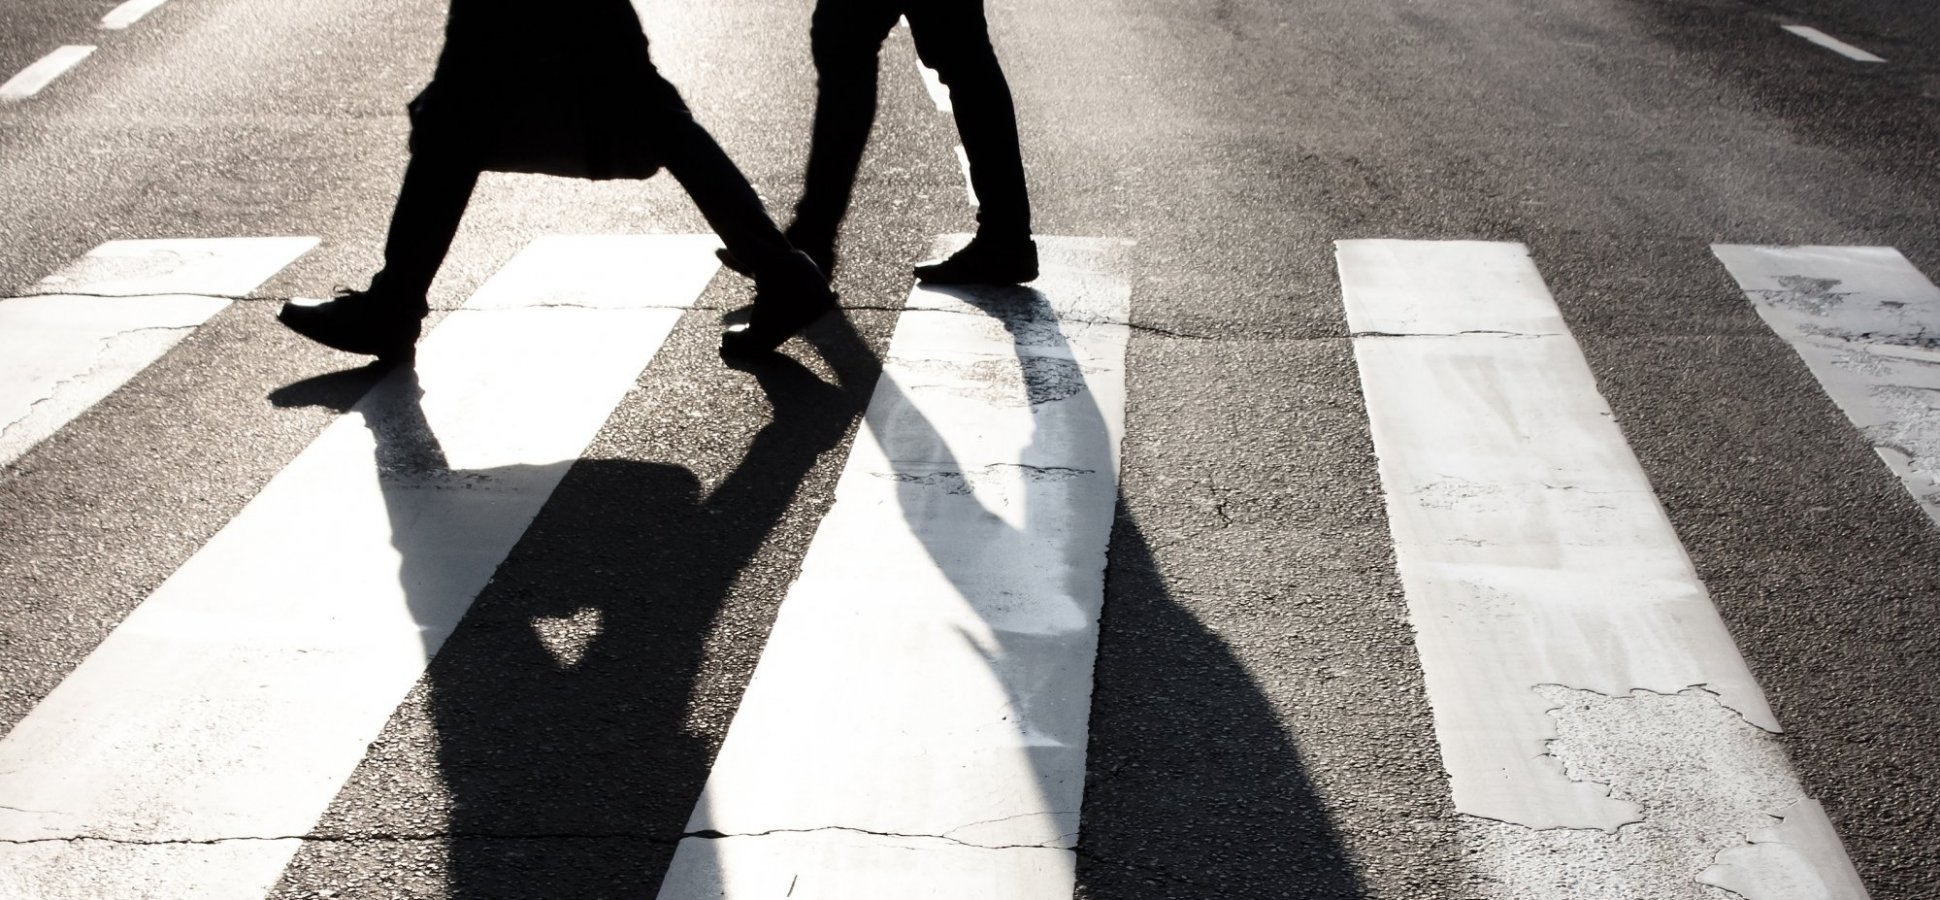 Neuroscientist: Walking Is 'a Superpower' That Makes Us Smarter, Healthier and Happier